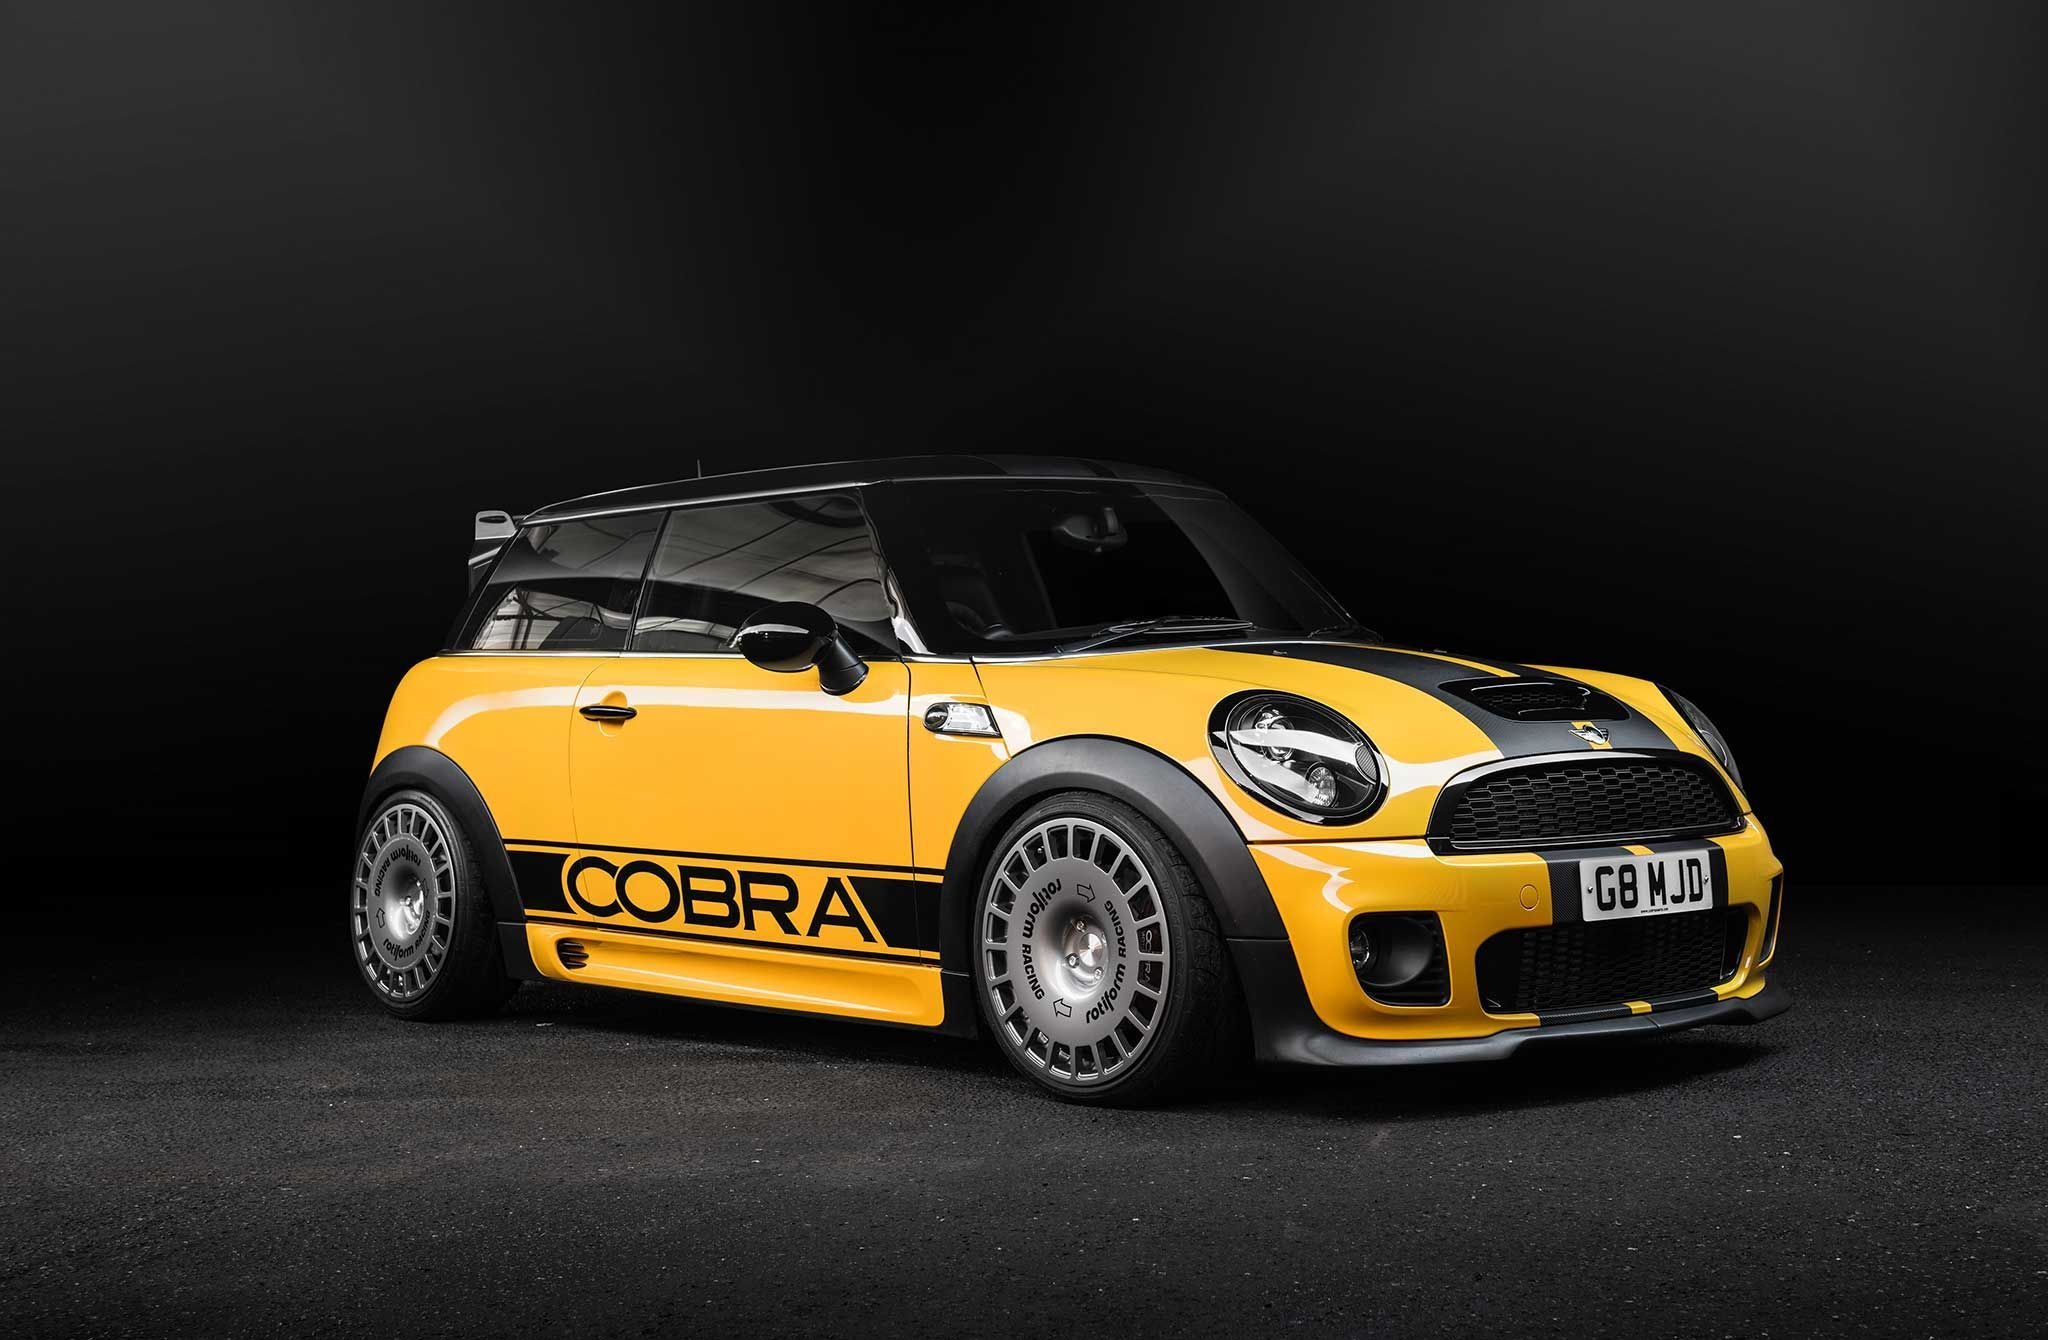 tuned mini cooper cobra great interior mini coop. Black Bedroom Furniture Sets. Home Design Ideas